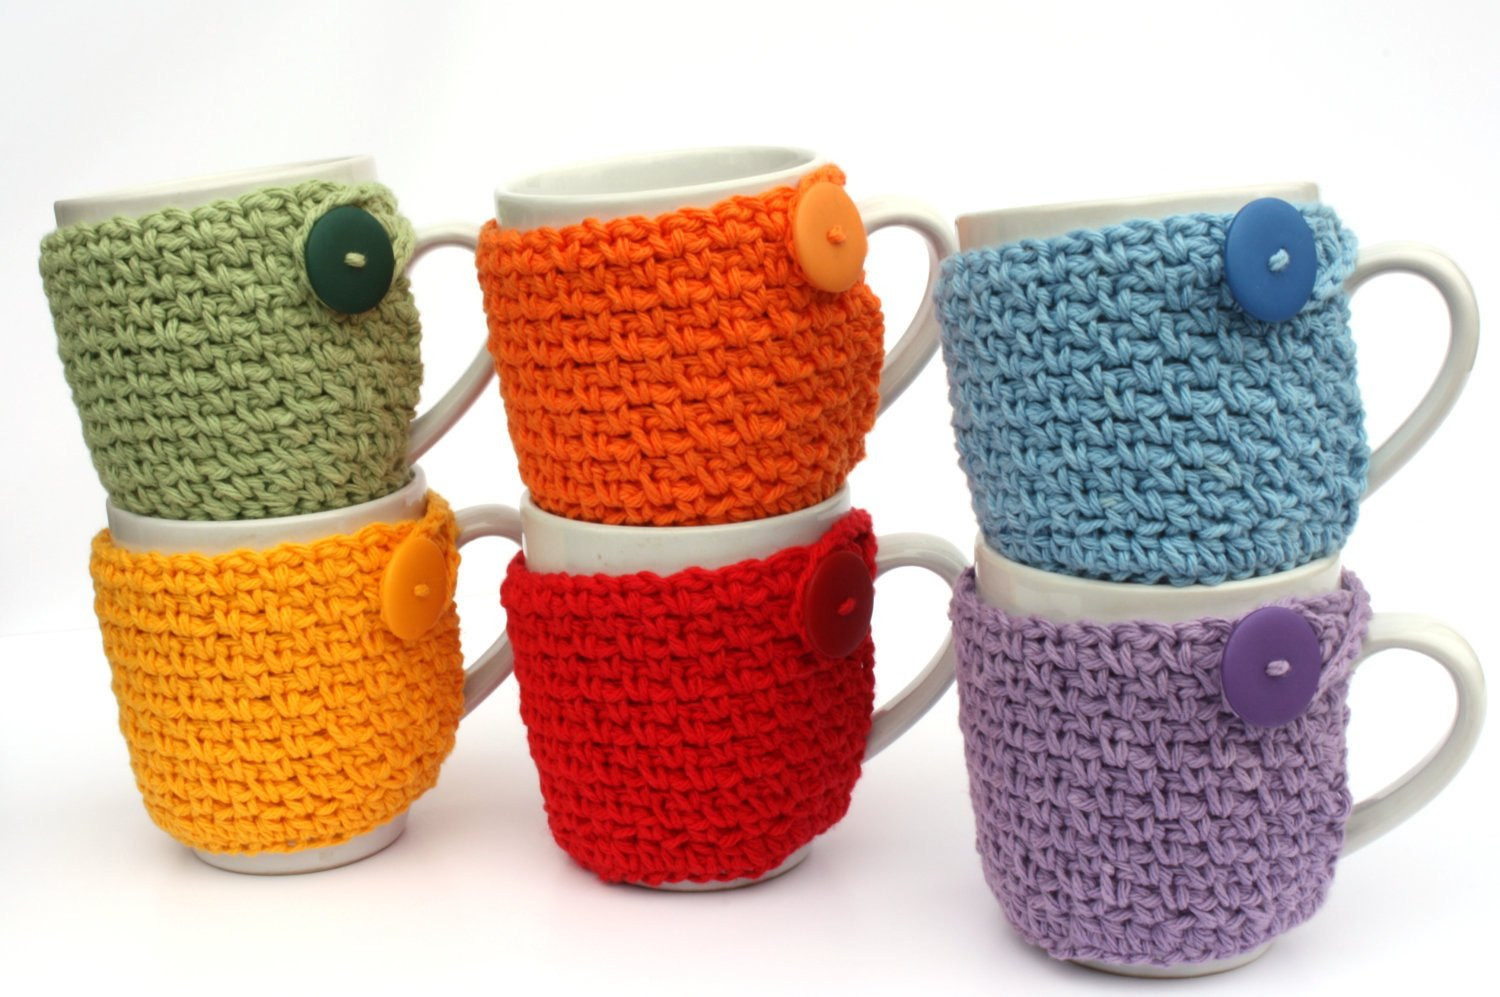 Crochet Coffee Cup Cozy Lovely Coffee Cup Cozy Crochet Cup Sleeve You Pick the by Sweetbriers Of Crochet Coffee Cup Cozy Best Of Craftdrawer Crafts Free Easy to Crochet Mug Cozy Patterns